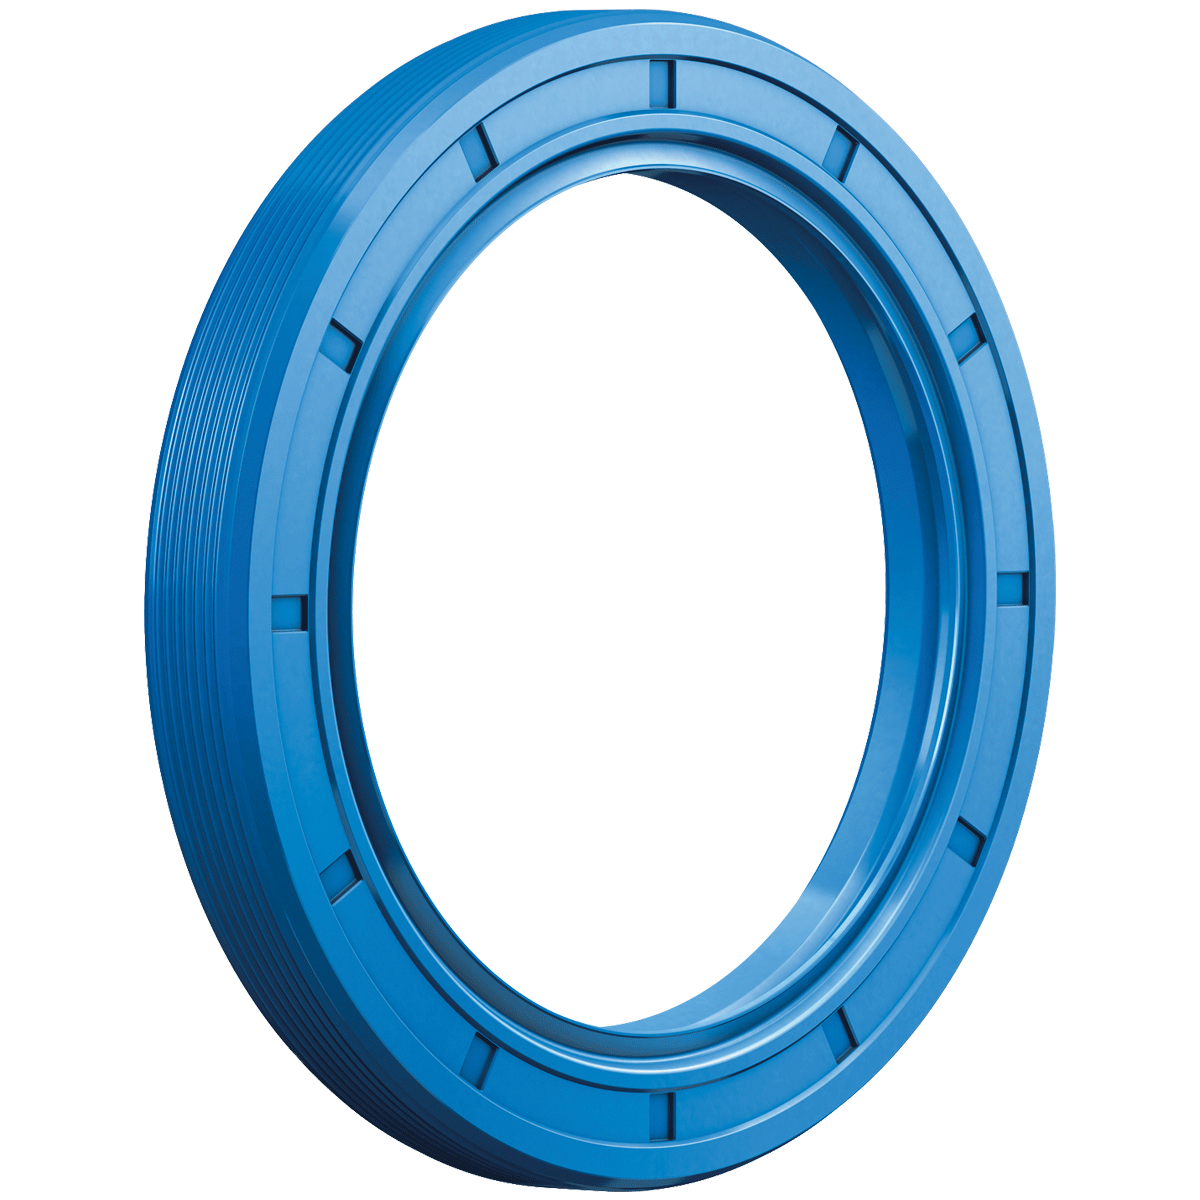 Simmerrings® / Radial Shaft Seals